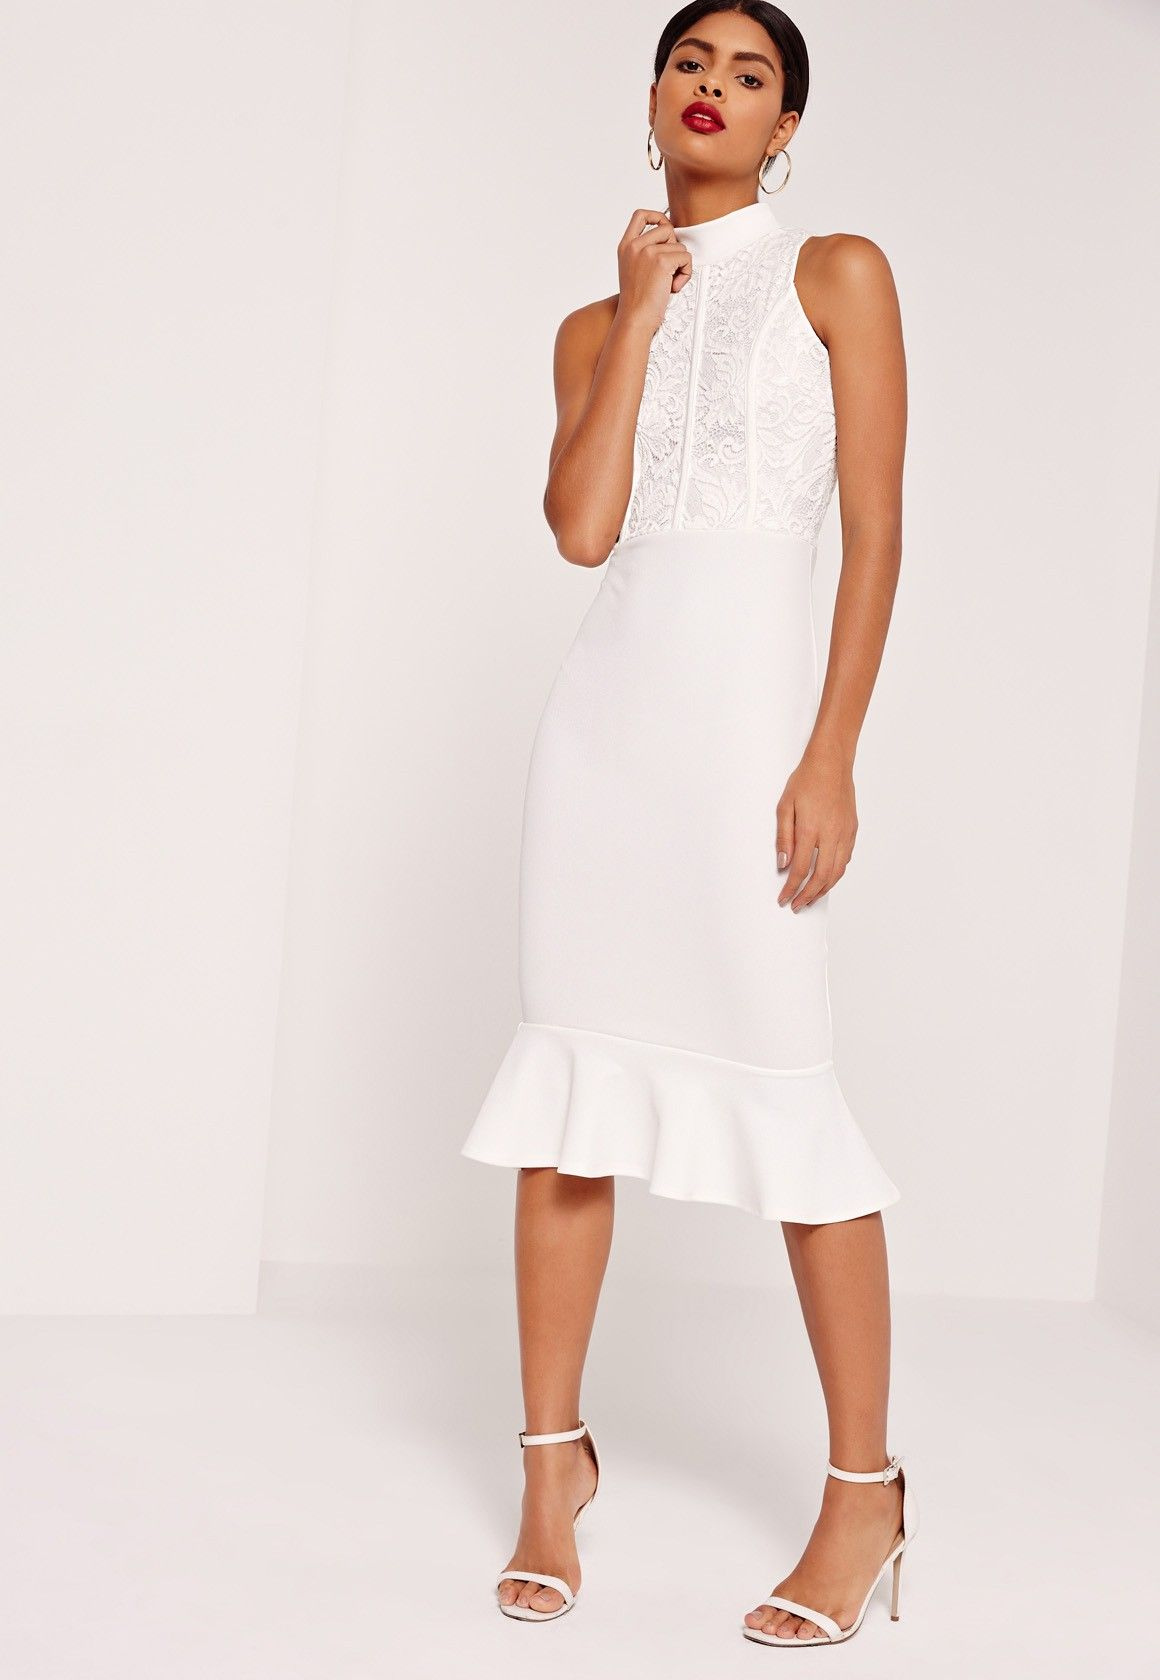 ce5c7098972 Missguided - Lace Top Fishtail Midi Dress White